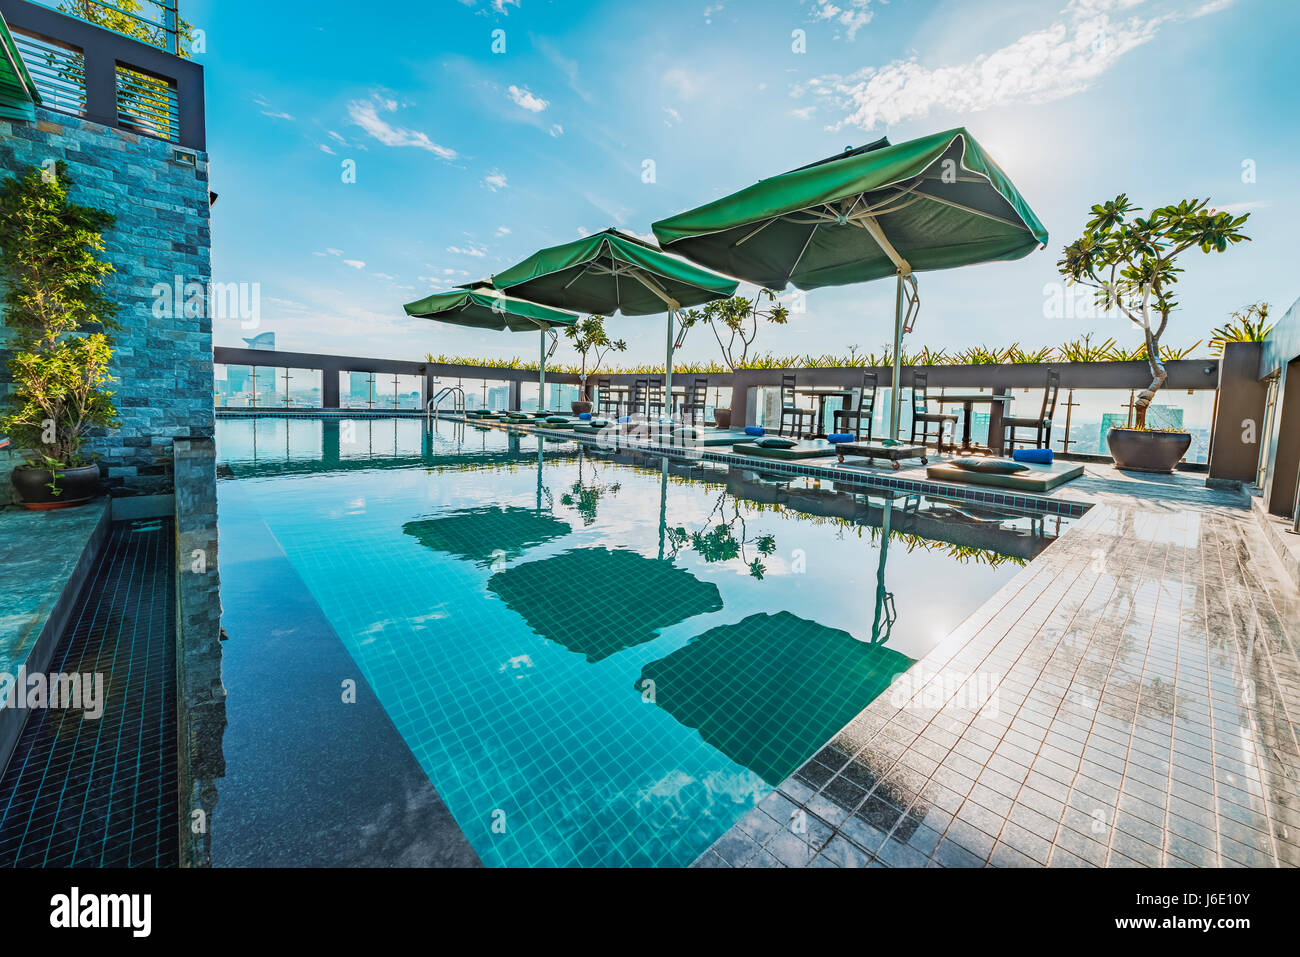 Rooftop floor stock photos rooftop floor stock images for Rooftop swimming pool